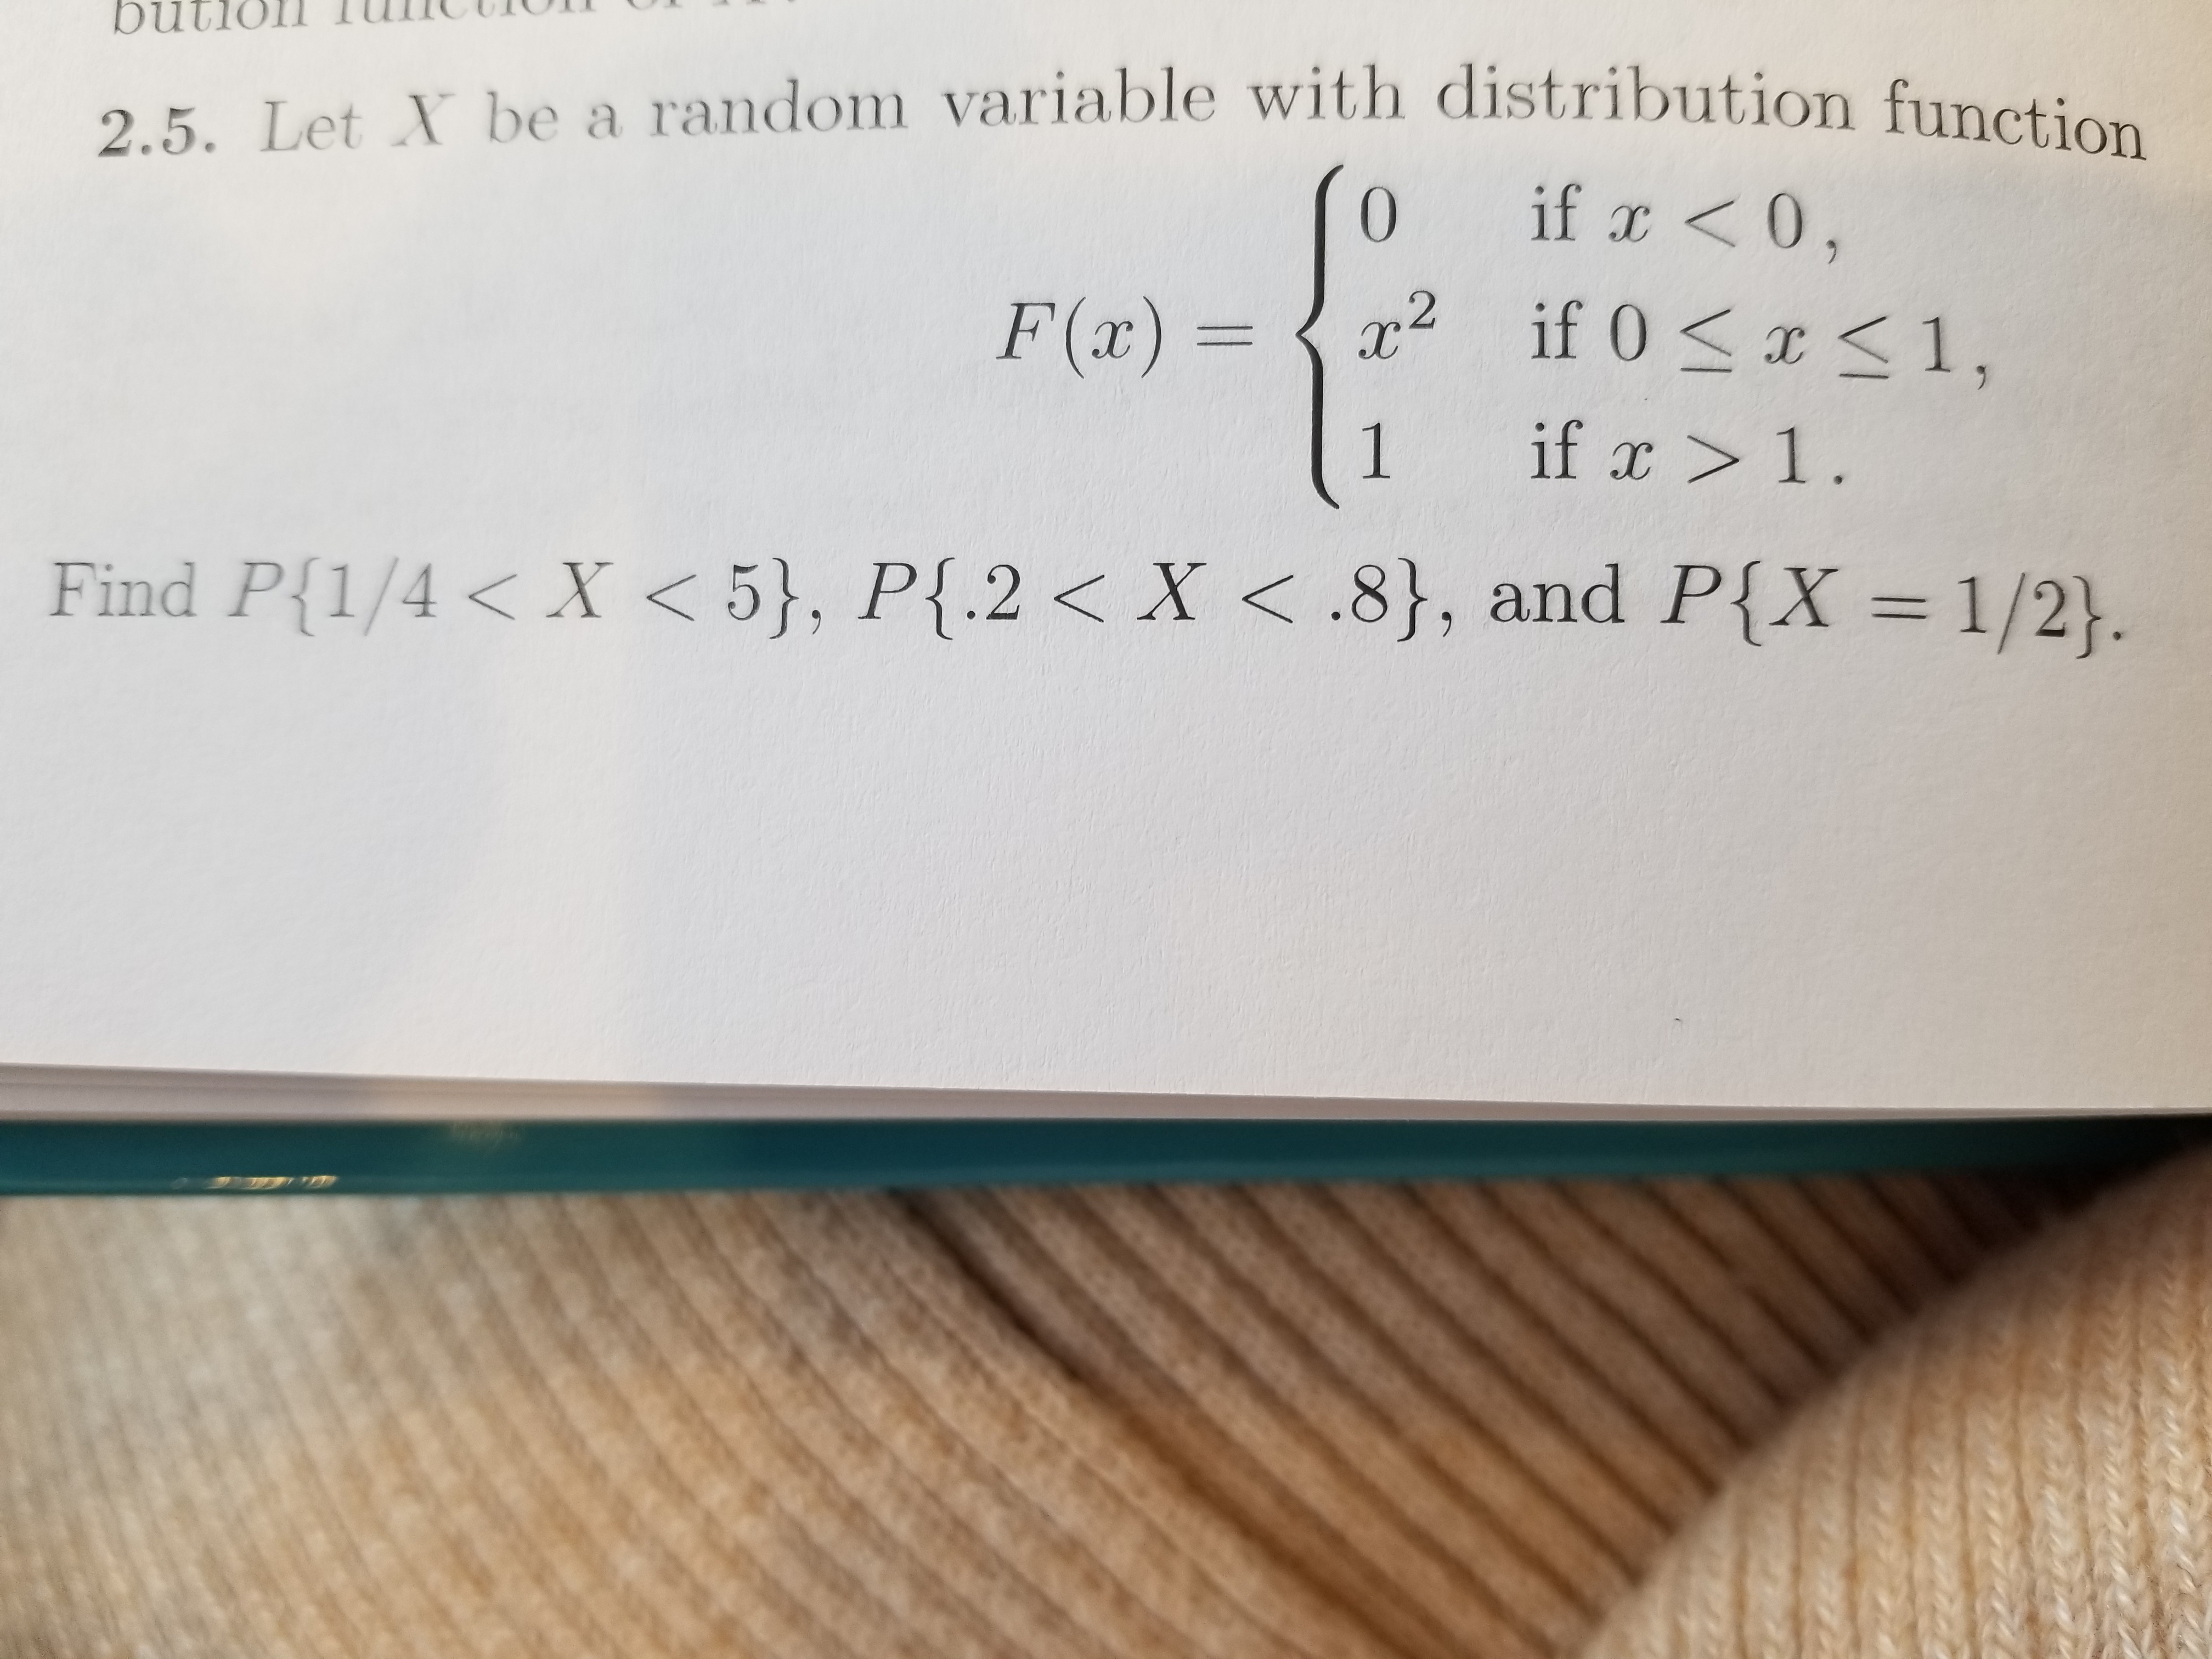 2.5. Let N be a random variable with distribution function 0 if <0 F(2) = 〈a,2 if 0 < x < 1 Find P{1,4 < X < 5), P12 < X < .8}, and P(X = 1/2).